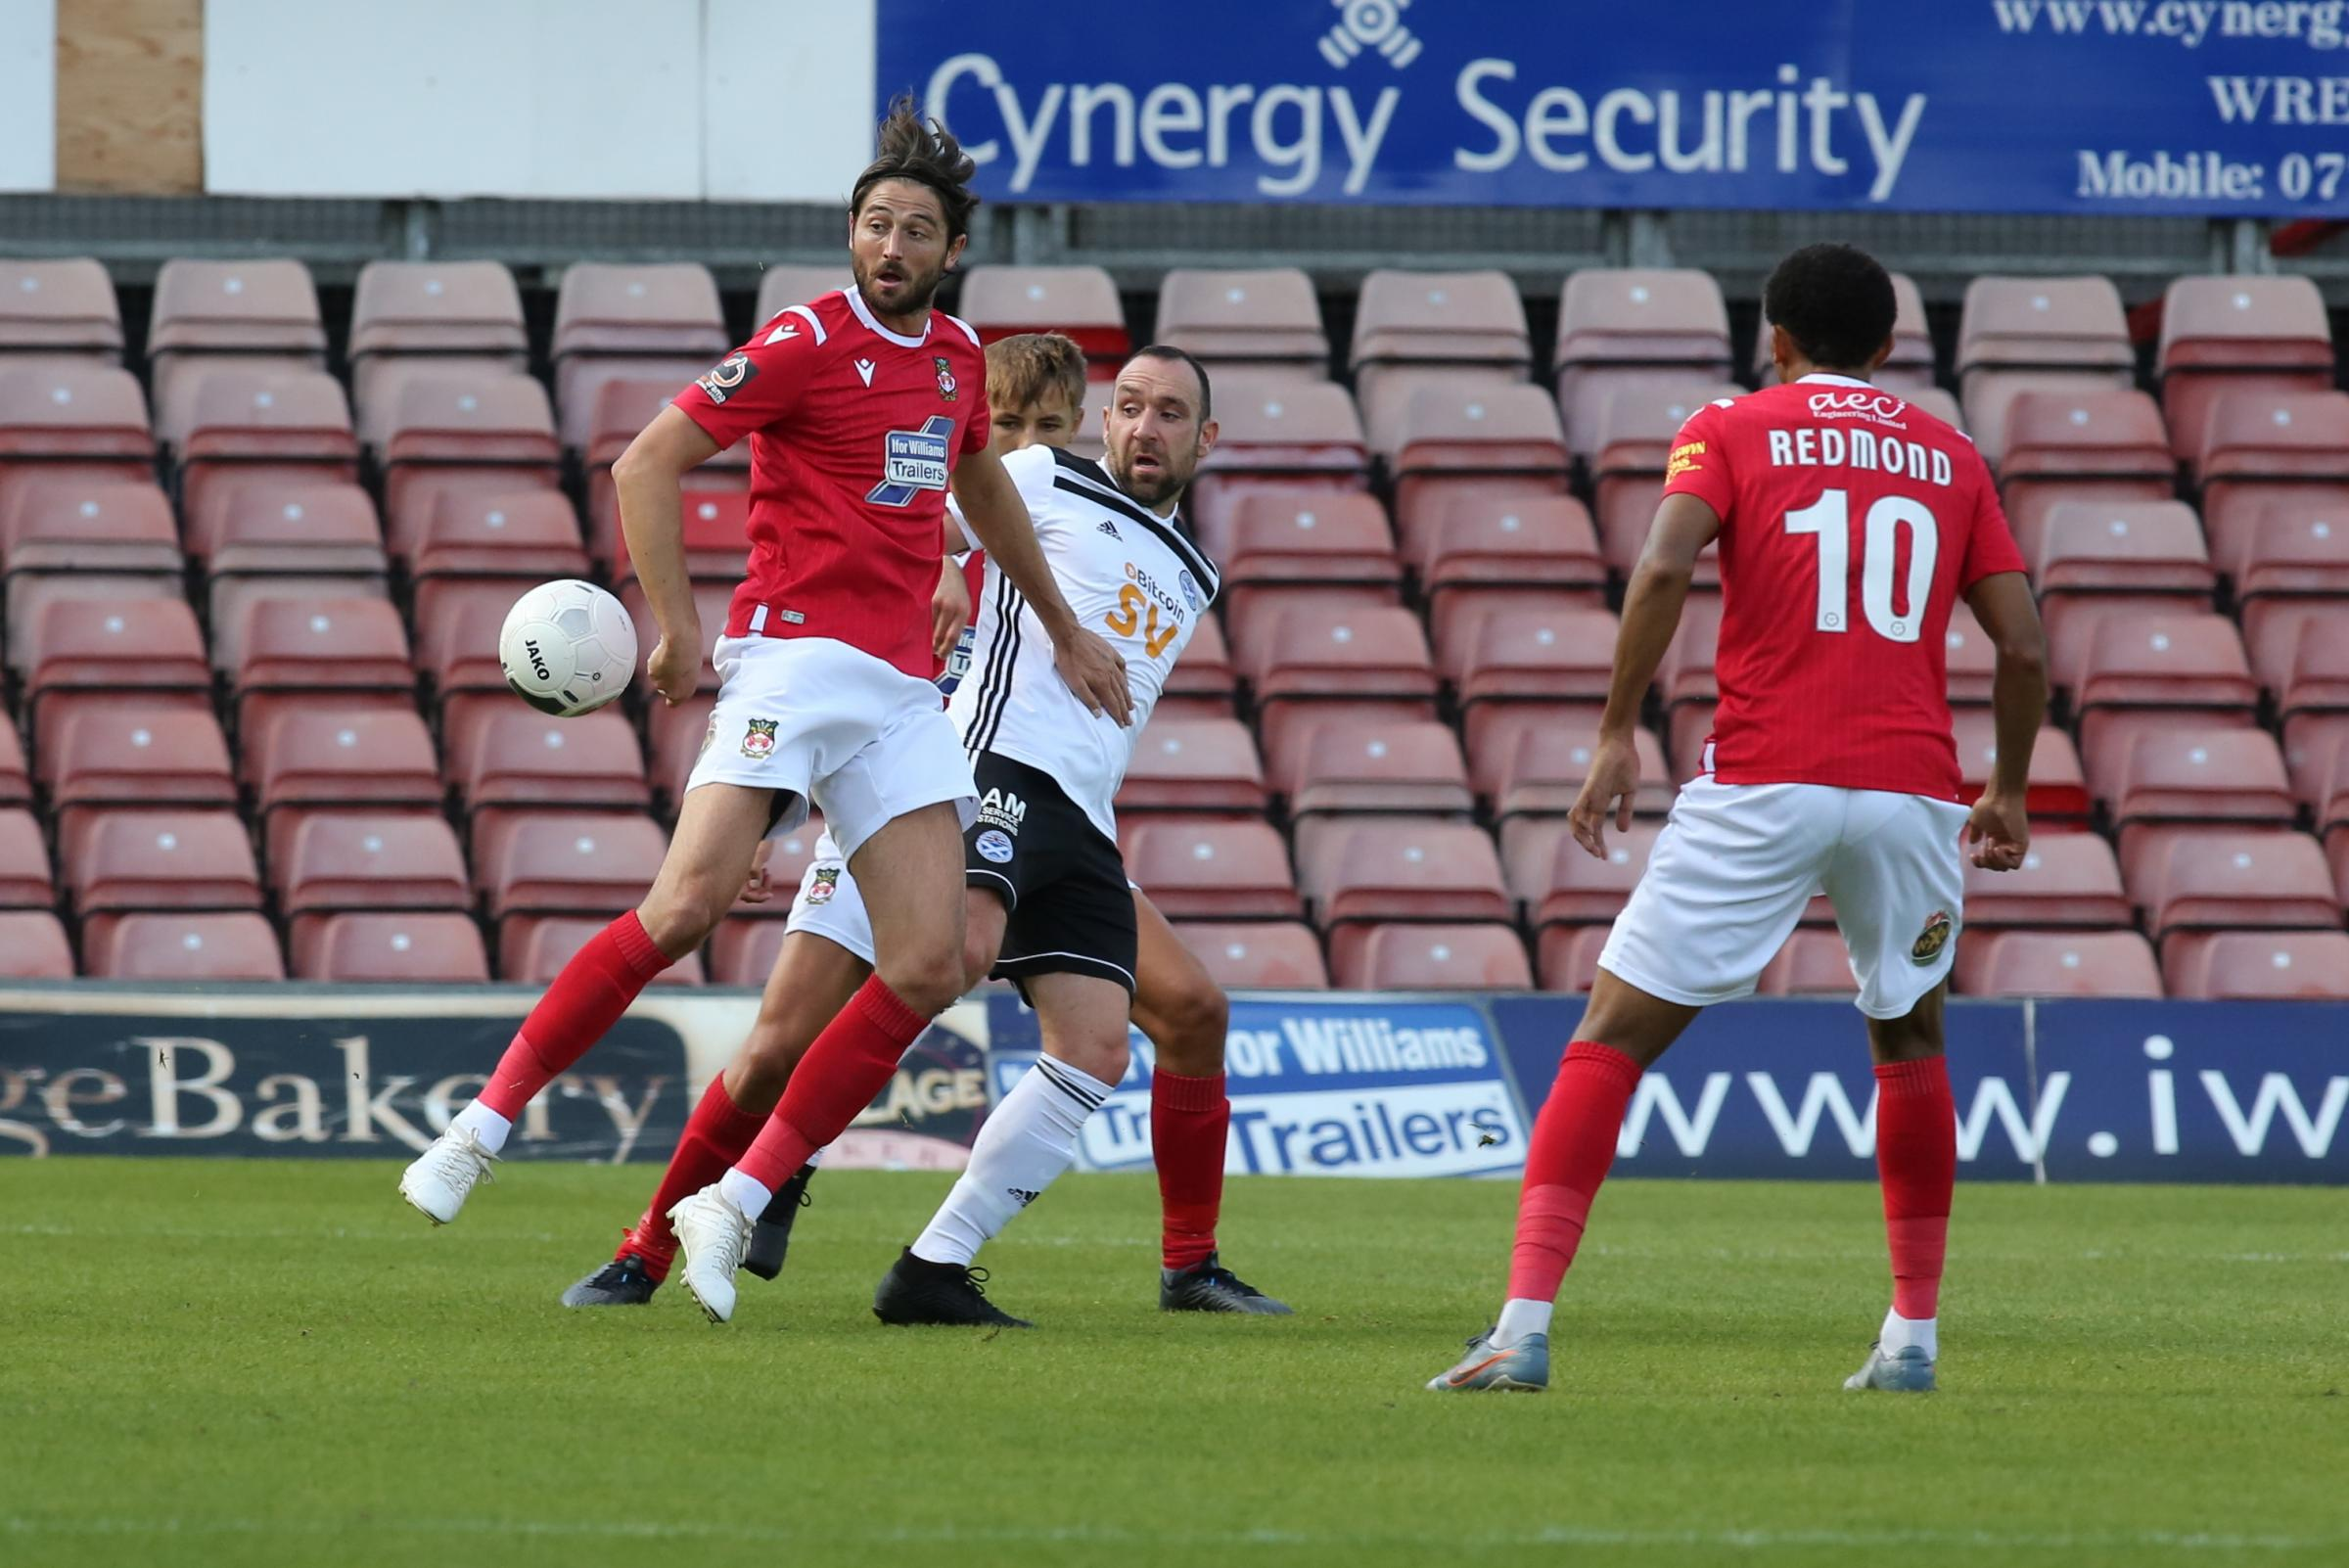 Wrexham AFC midfielder Adam Barton admits it has been a frustrating start to his spell at The Racecourse